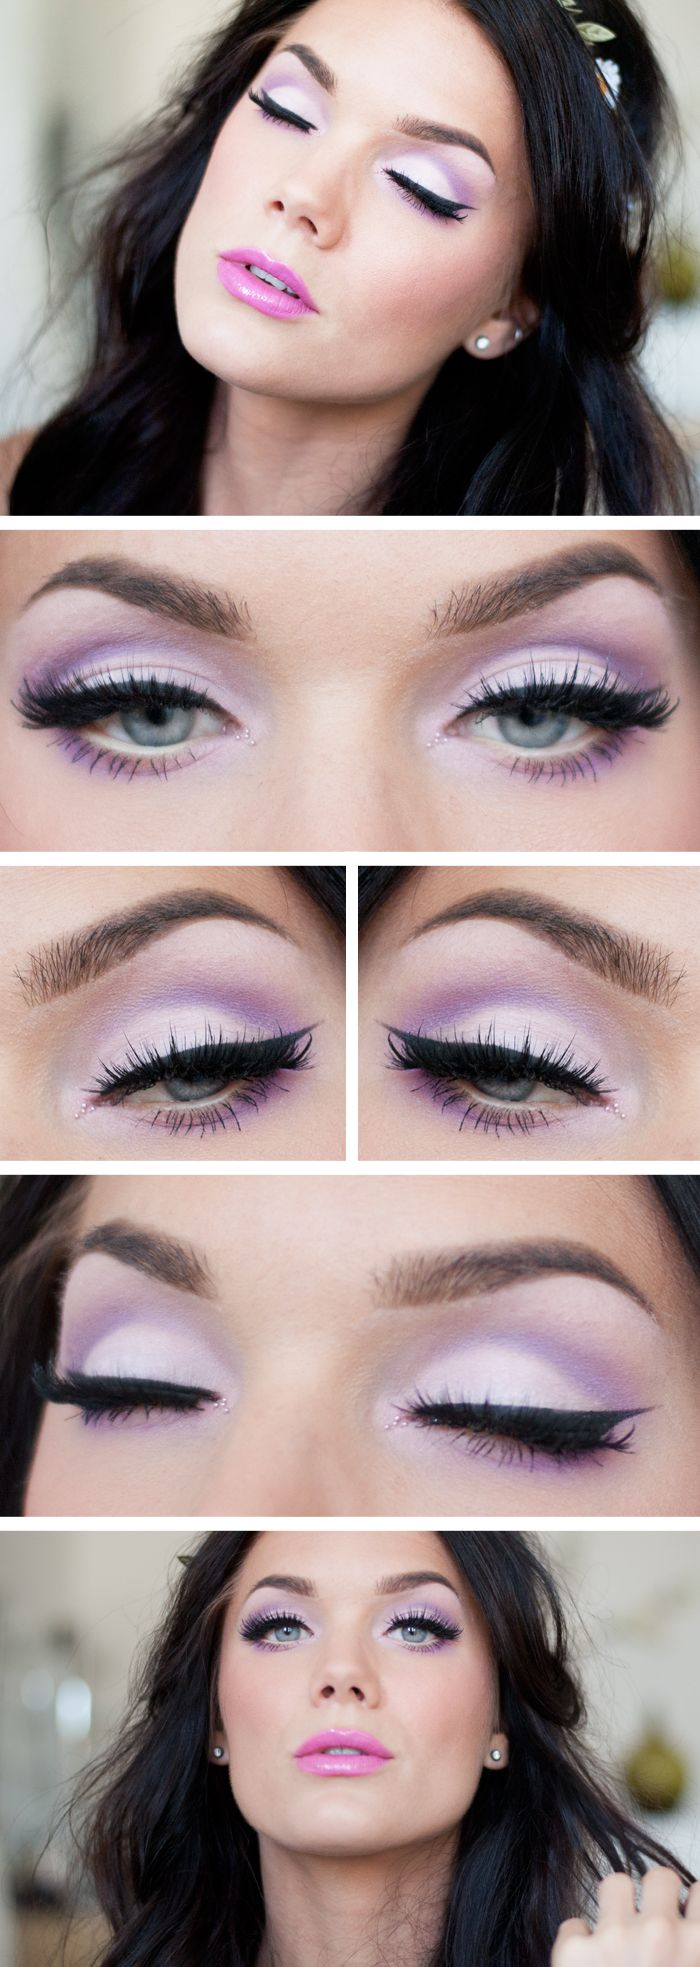 : Makeup Tutorial, Beautiful Makeup, Colorful Eyeshadow, Linda Hallberg, Eye Makeup, Makeup Ideas, Eyemakeup, Purple Eye